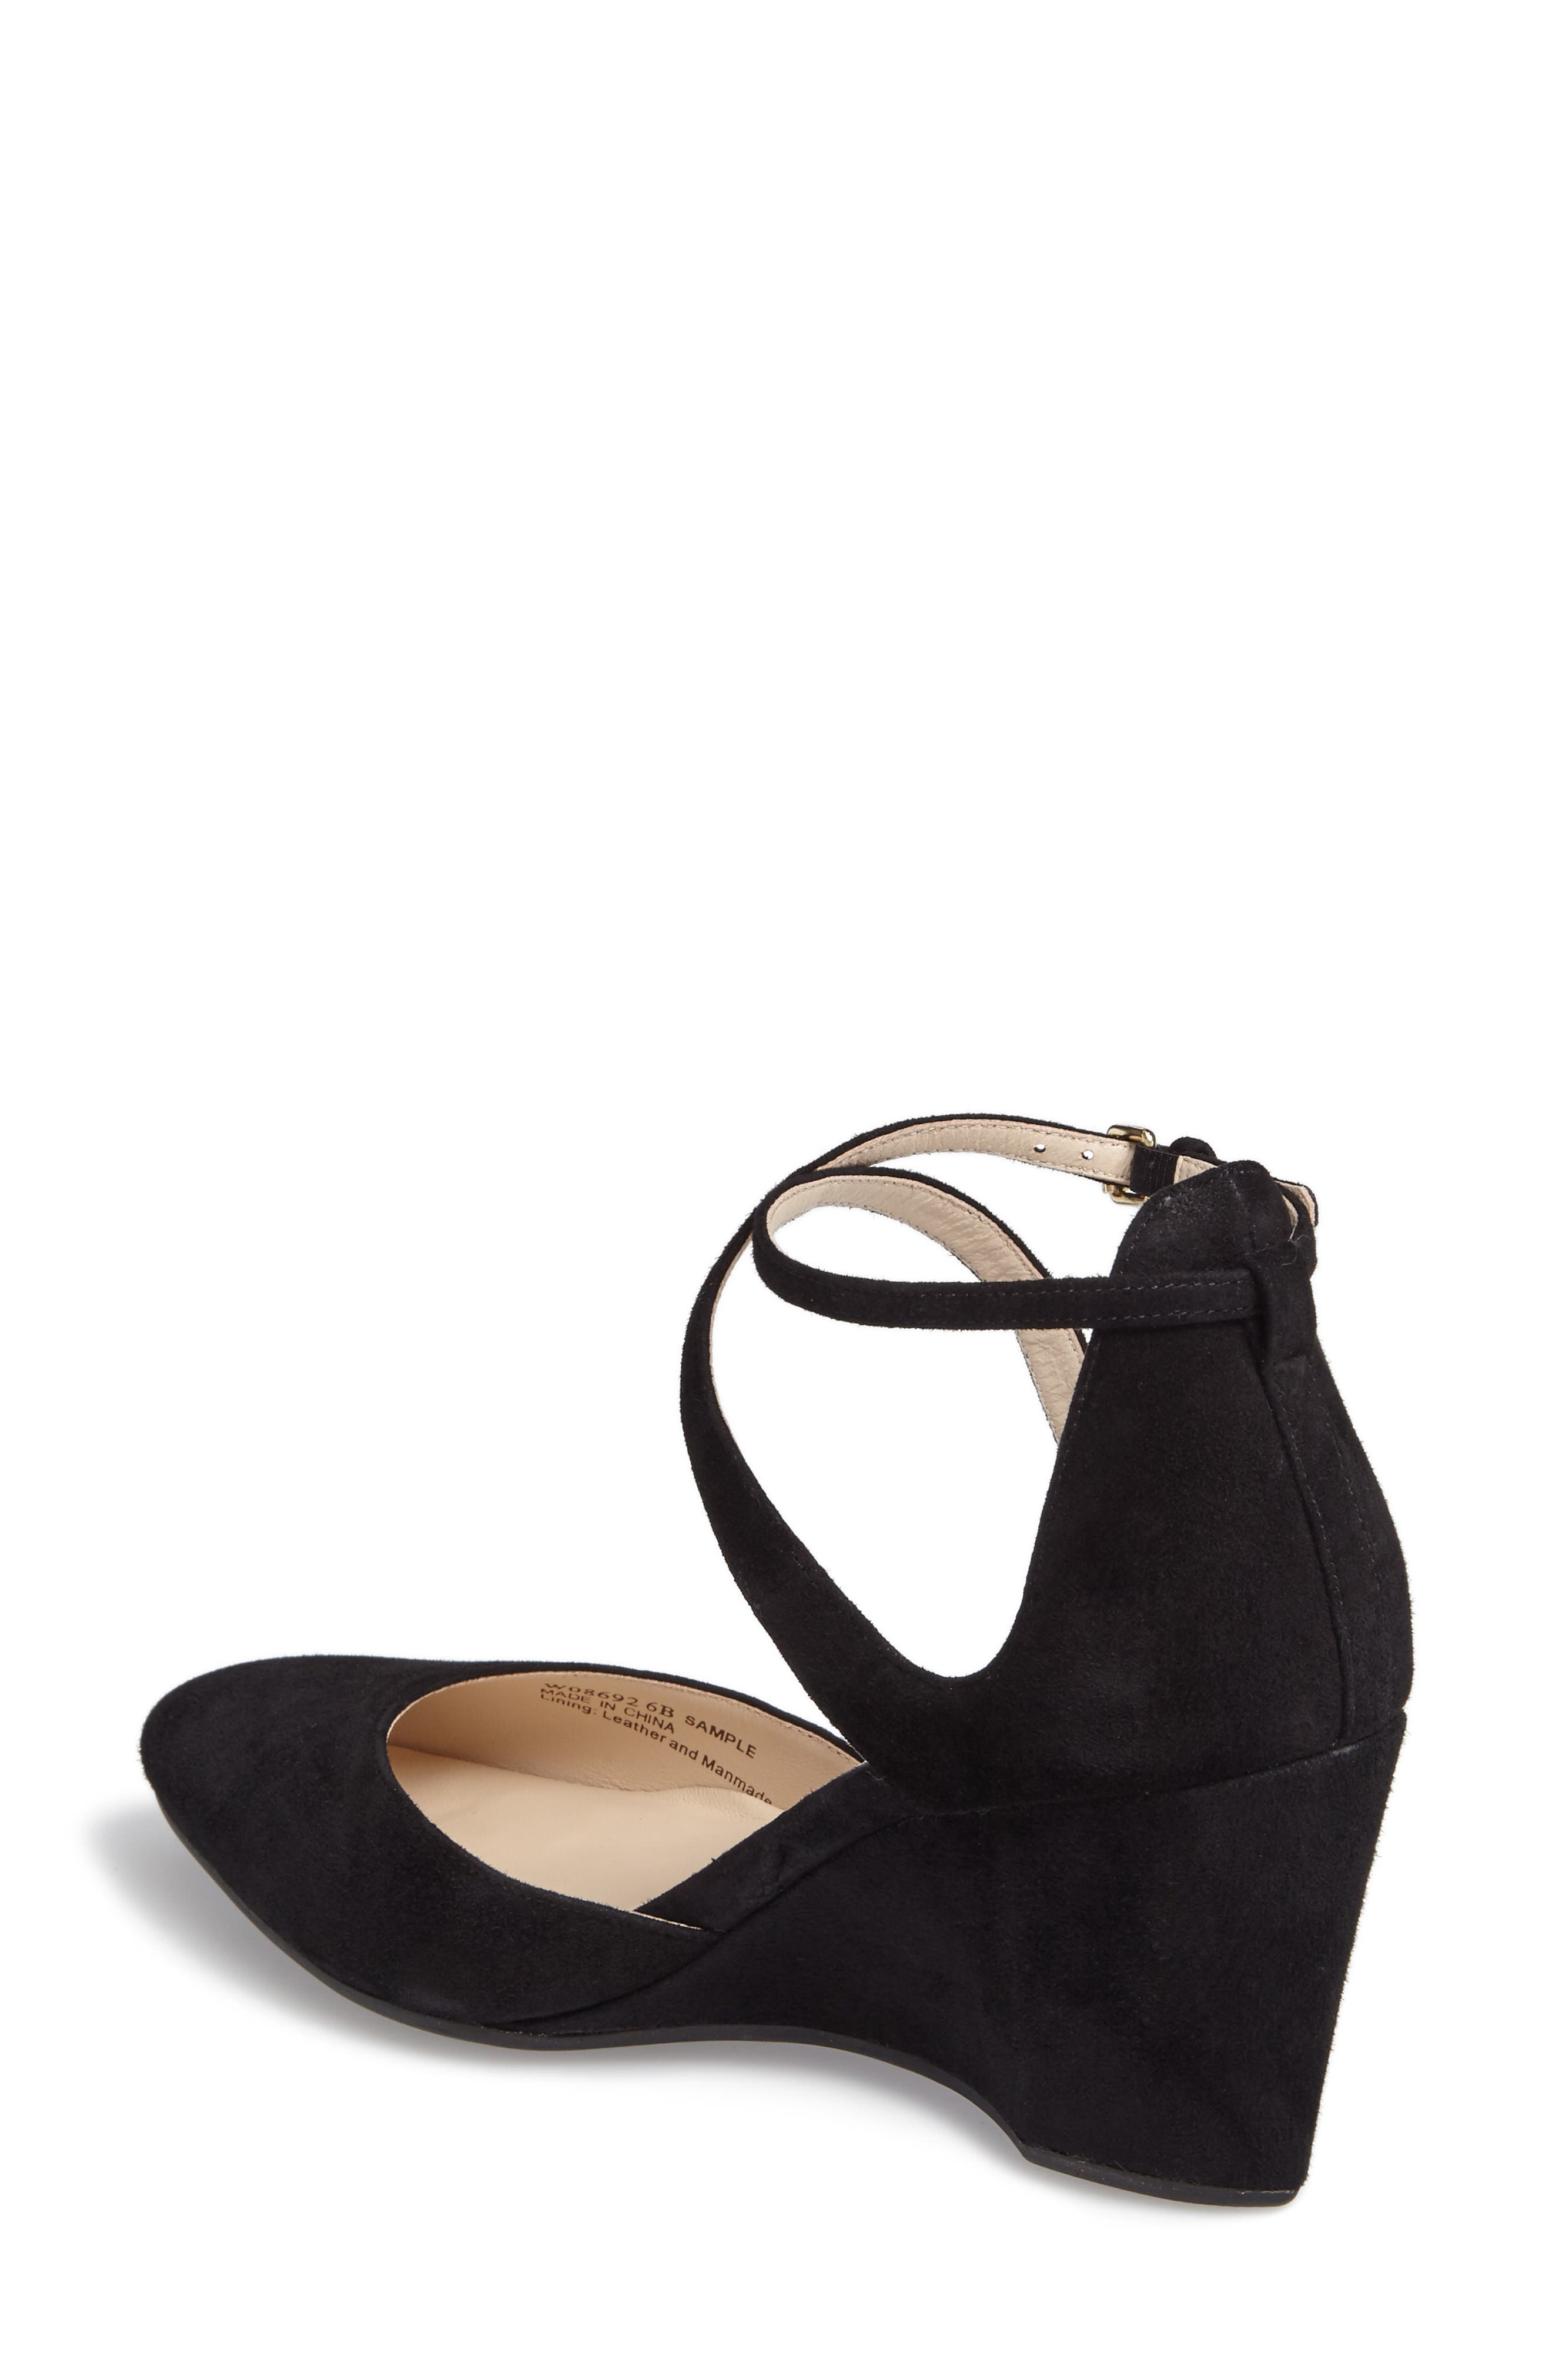 Lacey Ankle Strap Wedge Pump,                             Alternate thumbnail 2, color,                             001